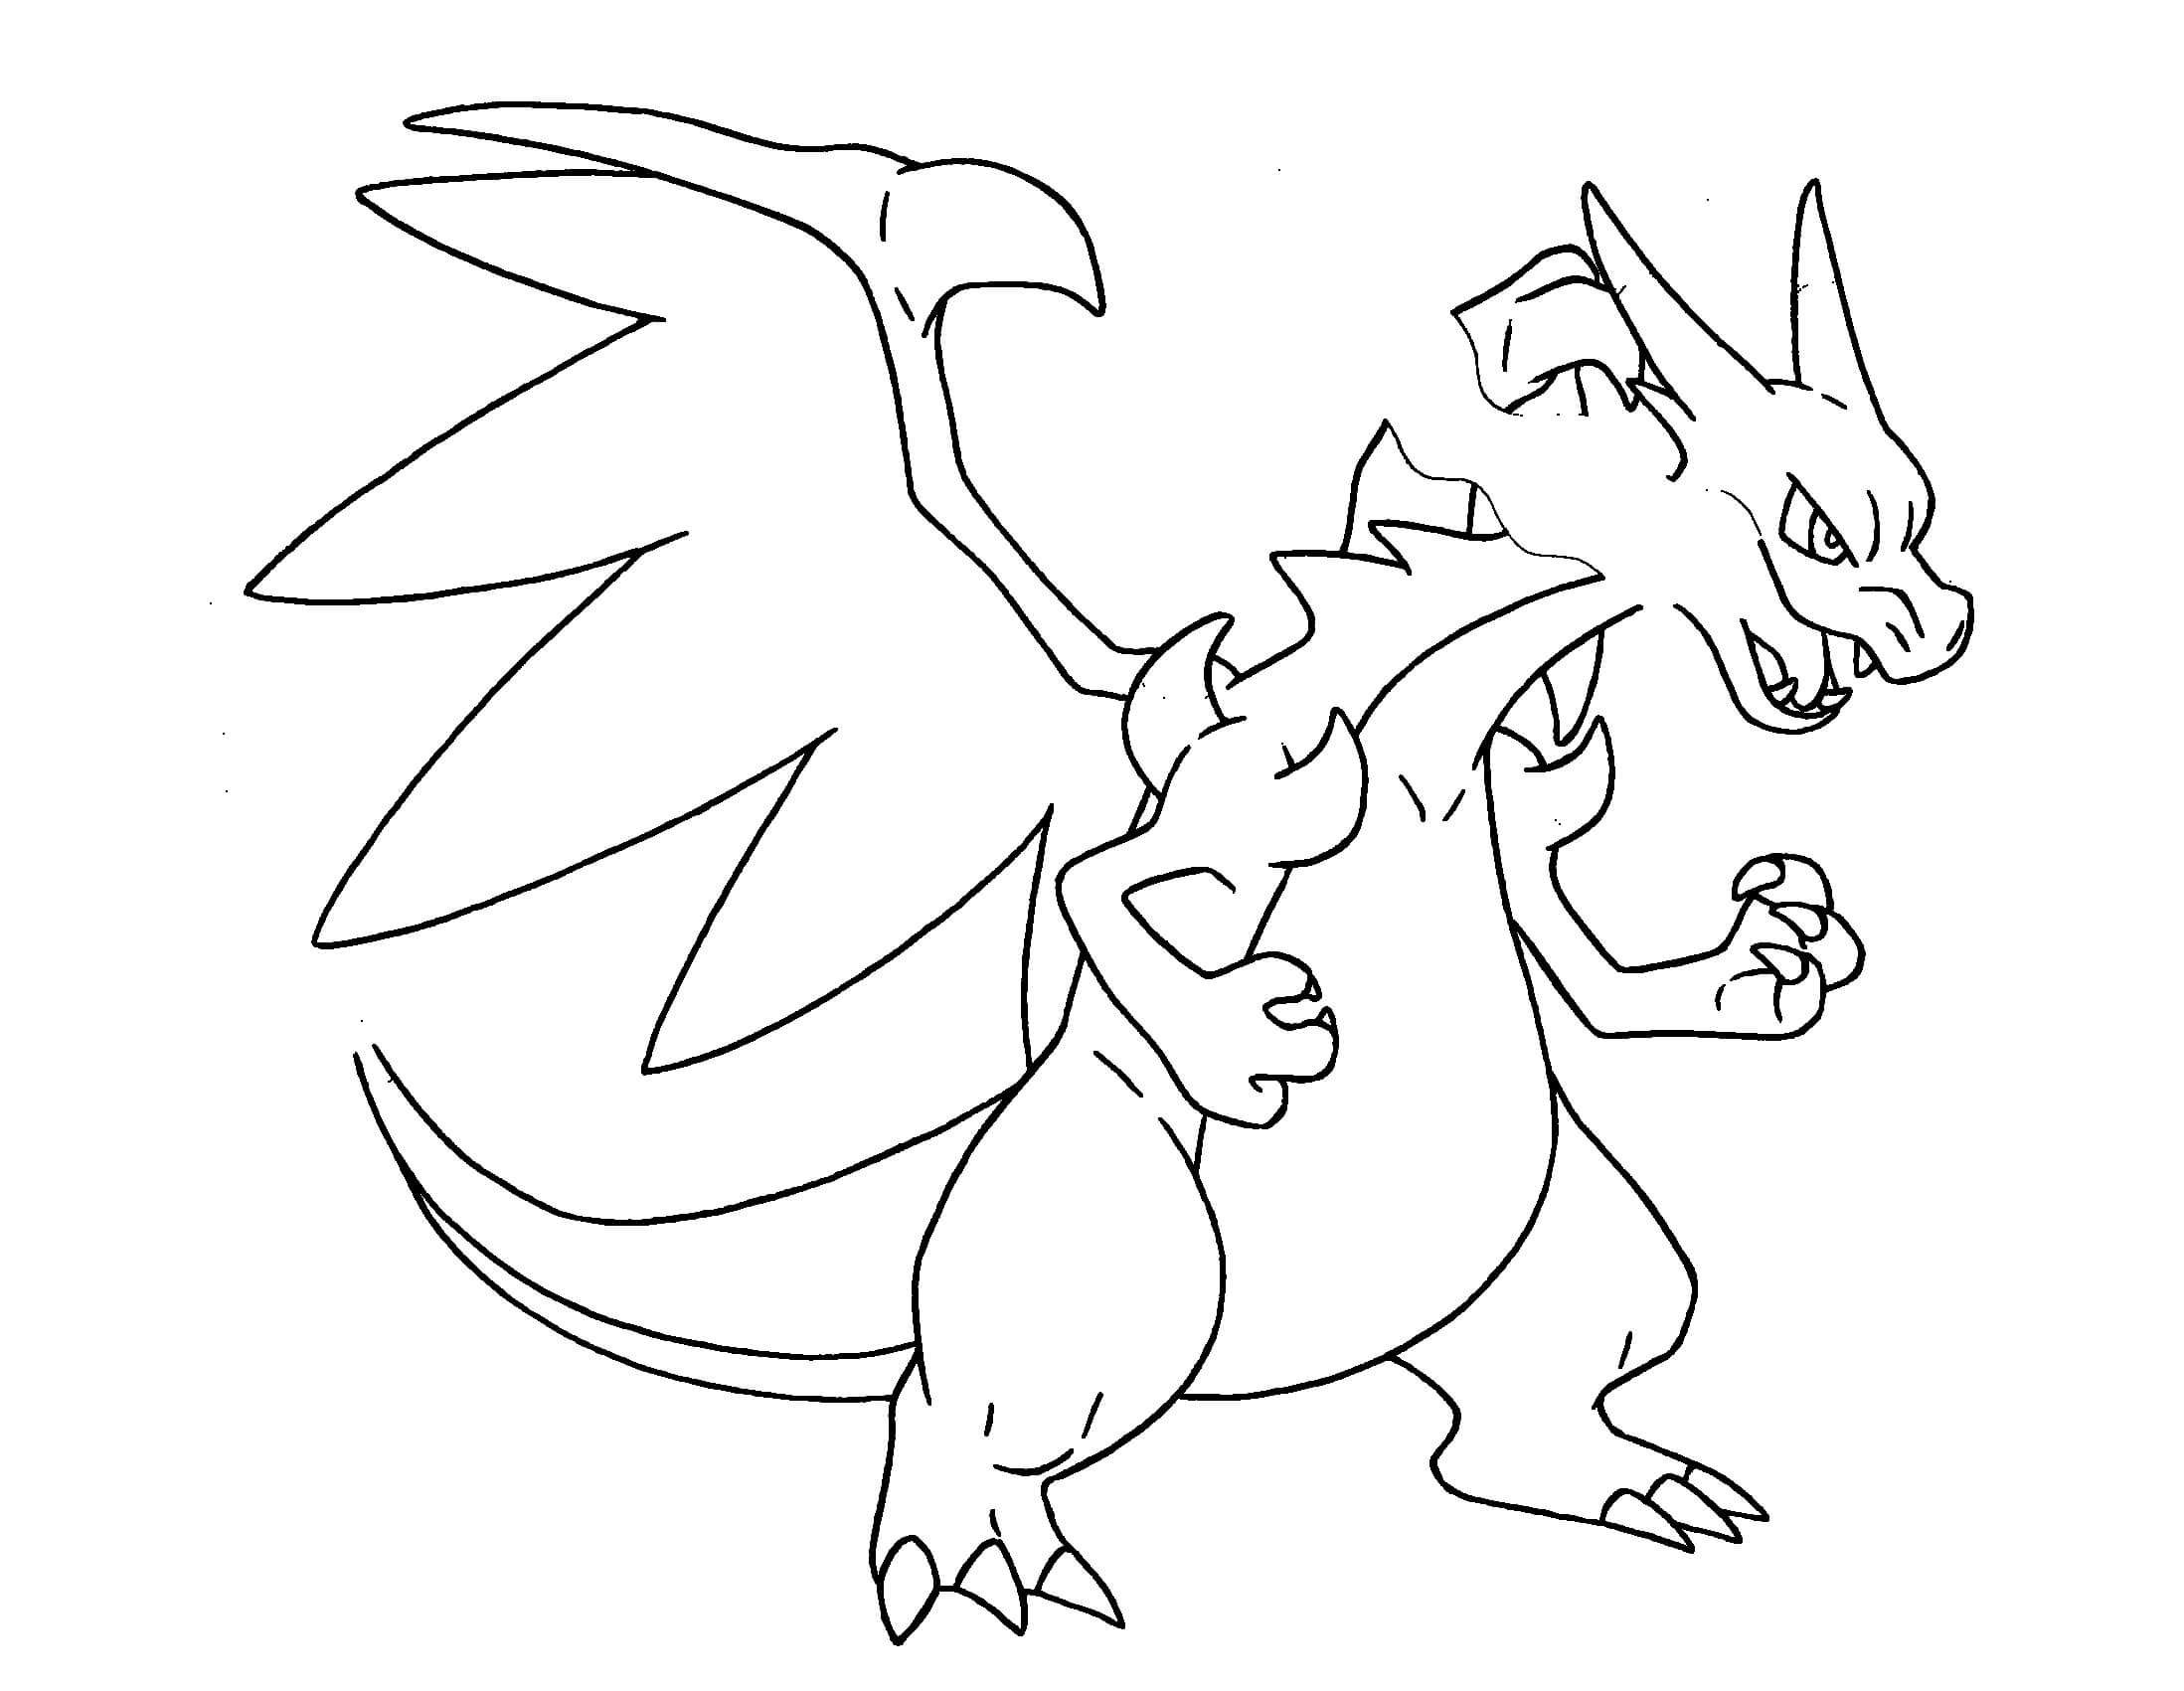 Pokemon Mega Entwicklung Ausmalbilder : Http Colorings Co Pokemon Coloring Pages Mega Ex Colorings